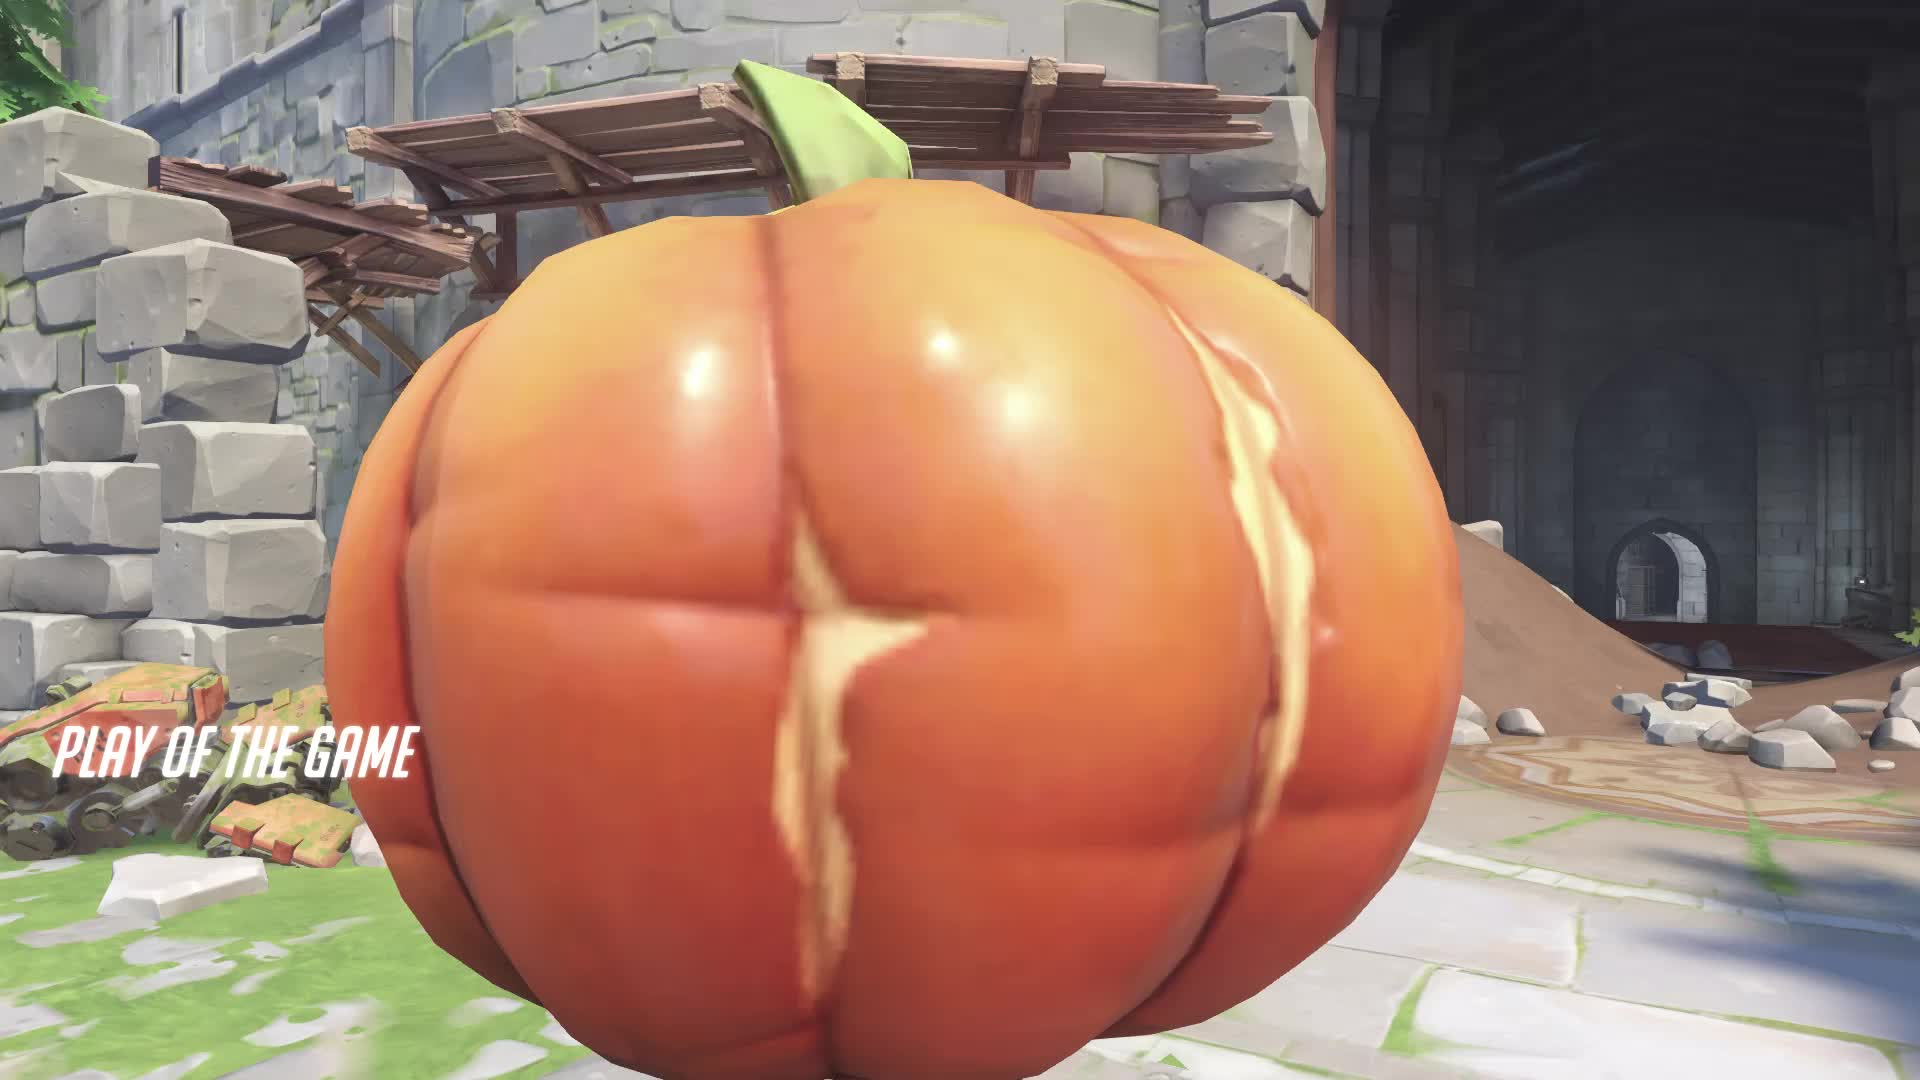 game, gameplay, gamergirl, games, genji, genjimain, overwatch, potg, qp, skill, thicc, all skill. GIFs